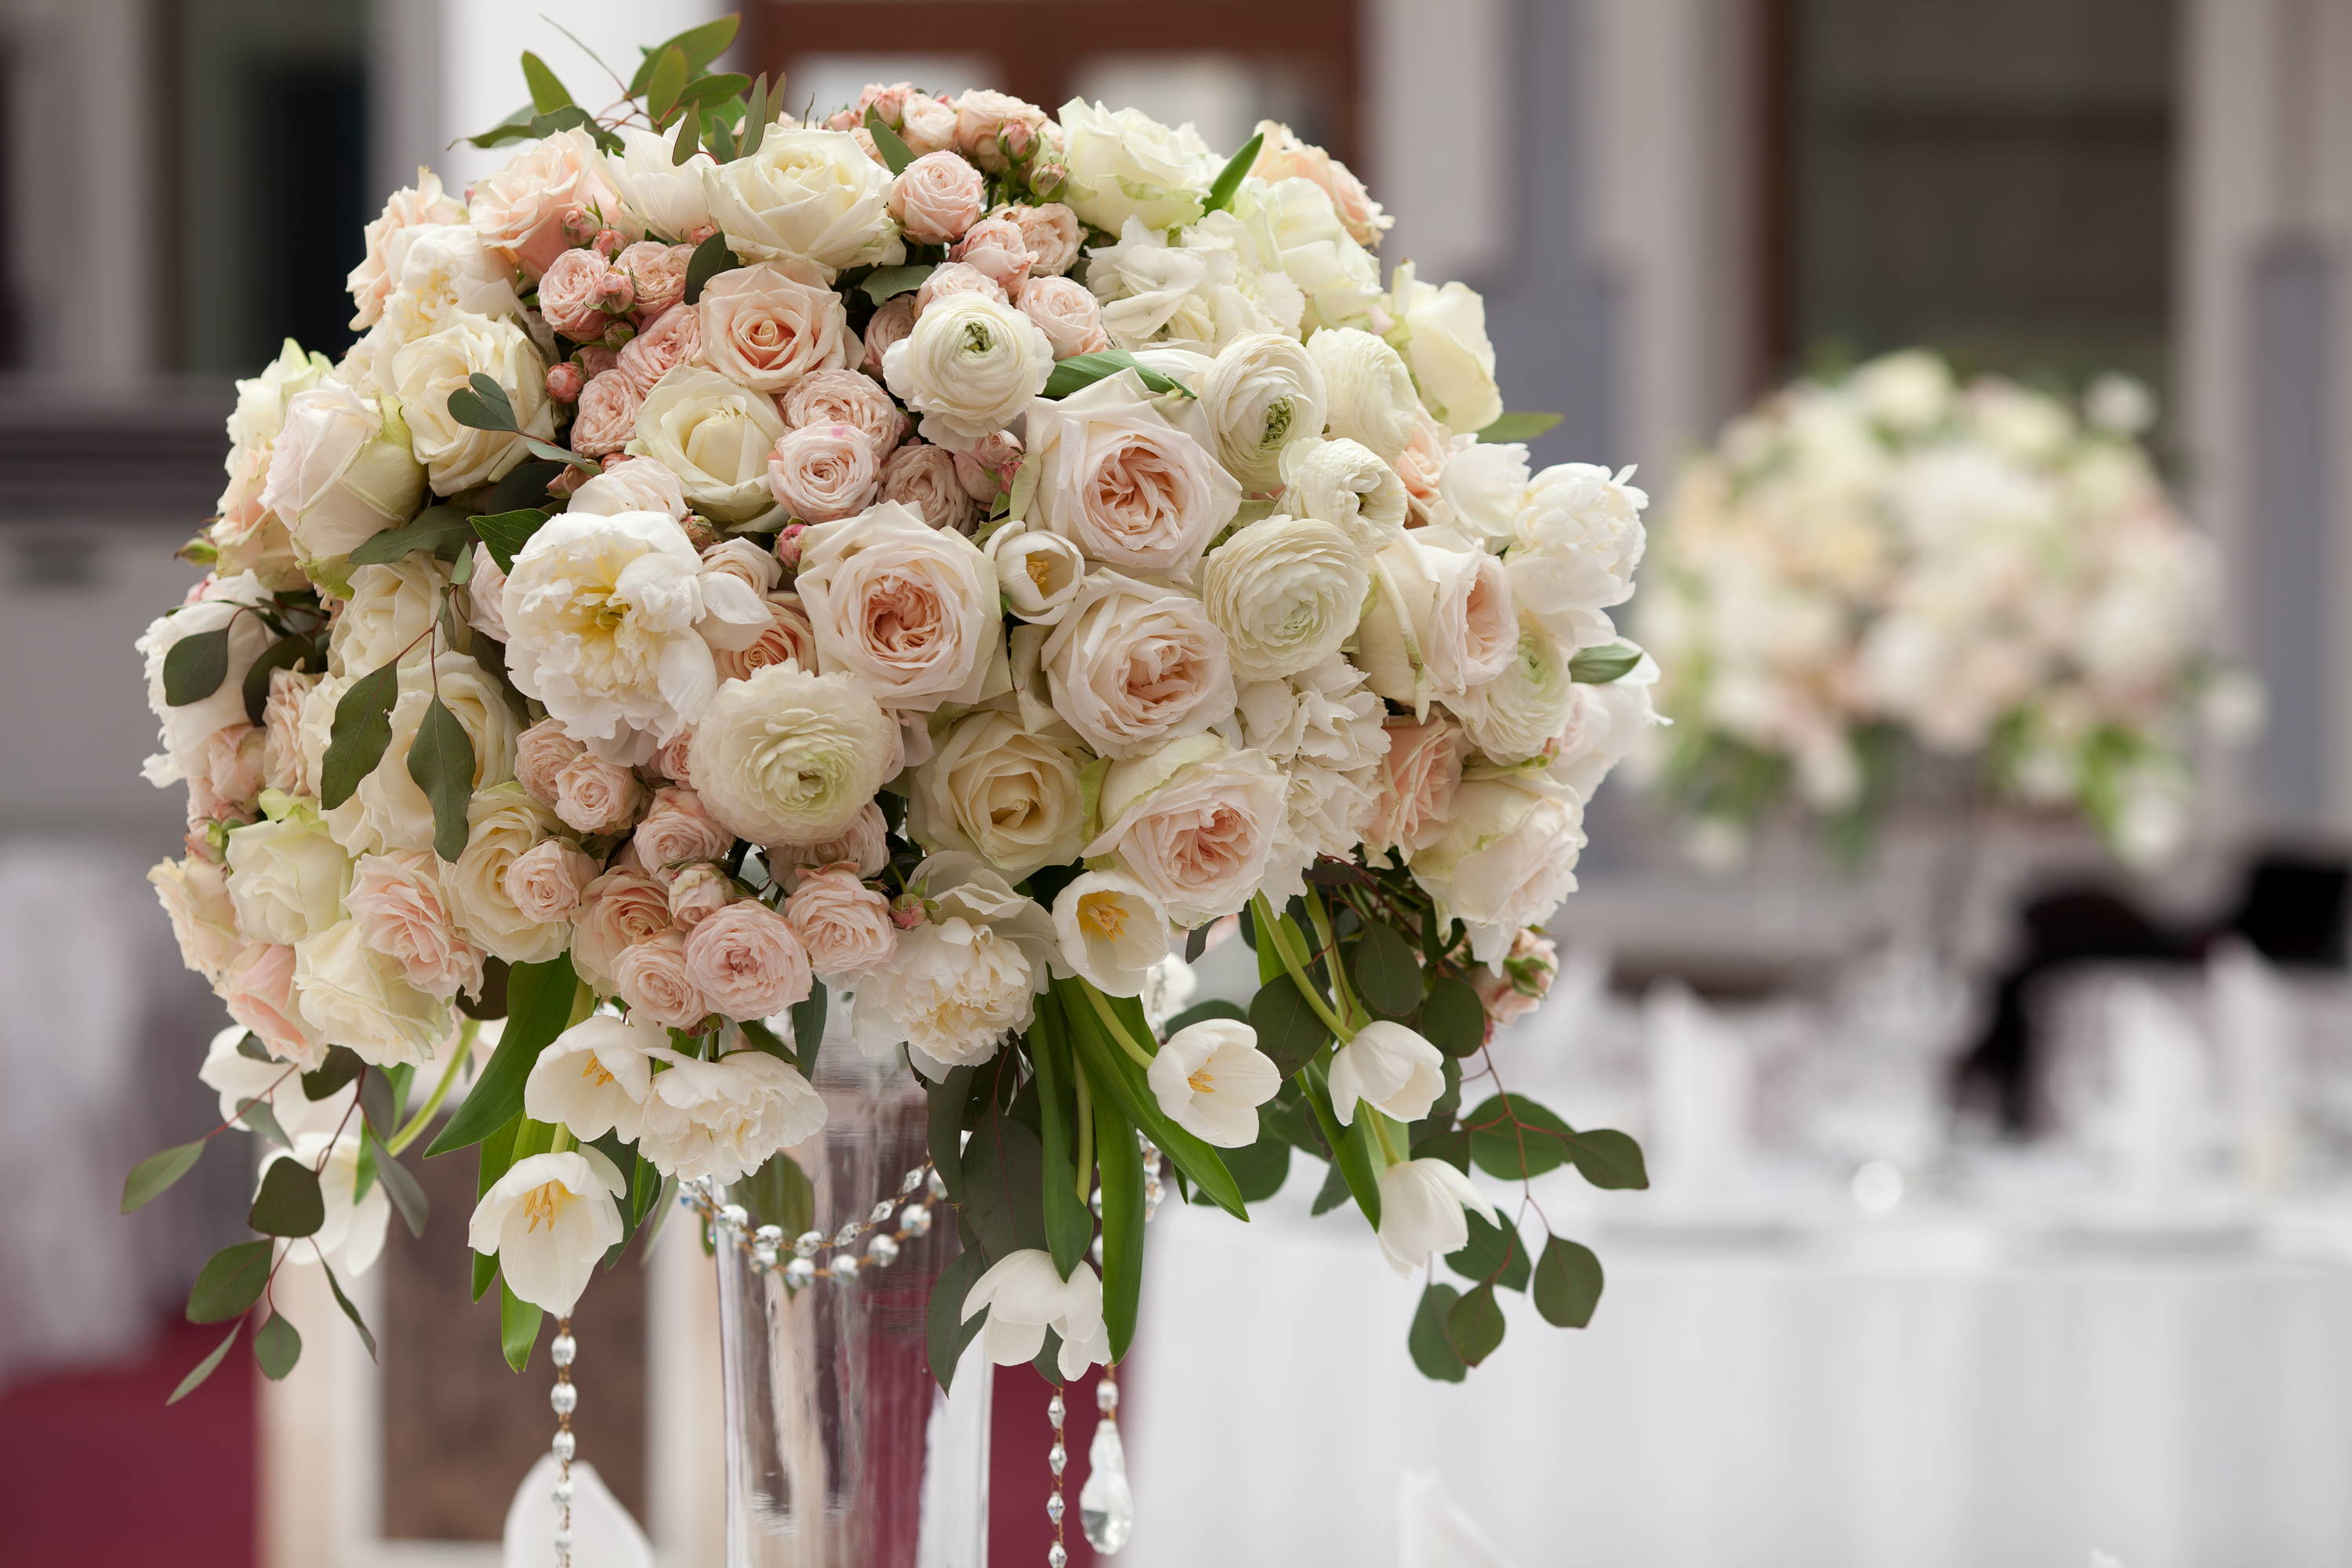 Weddings and events flowers miami browse through all our wedding flower collections izmirmasajfo